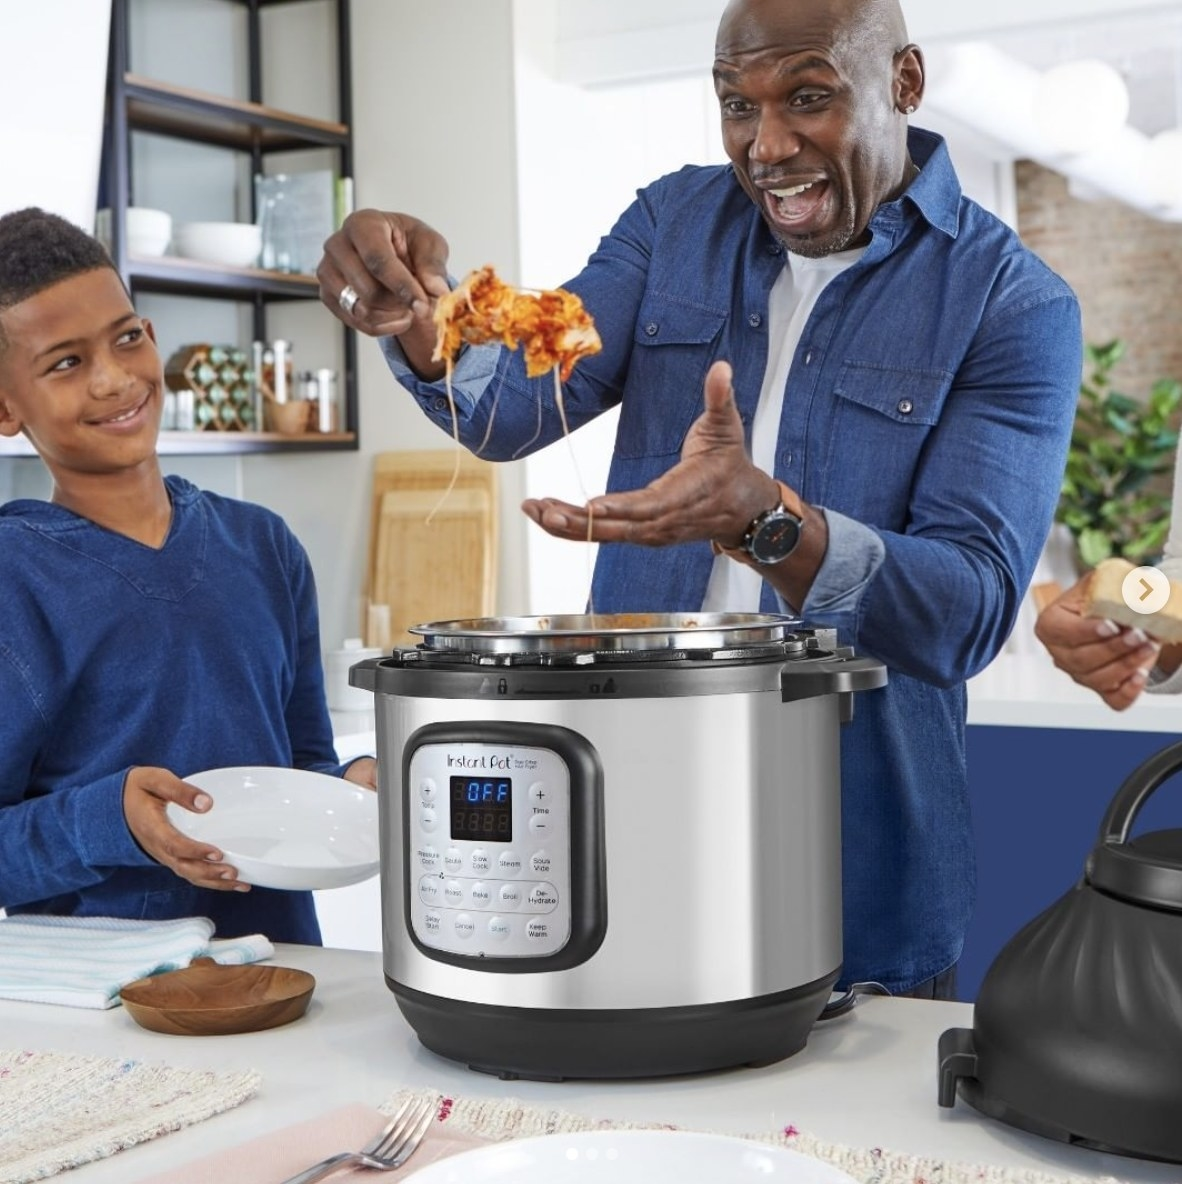 A person scooping food out of an Instant Pot